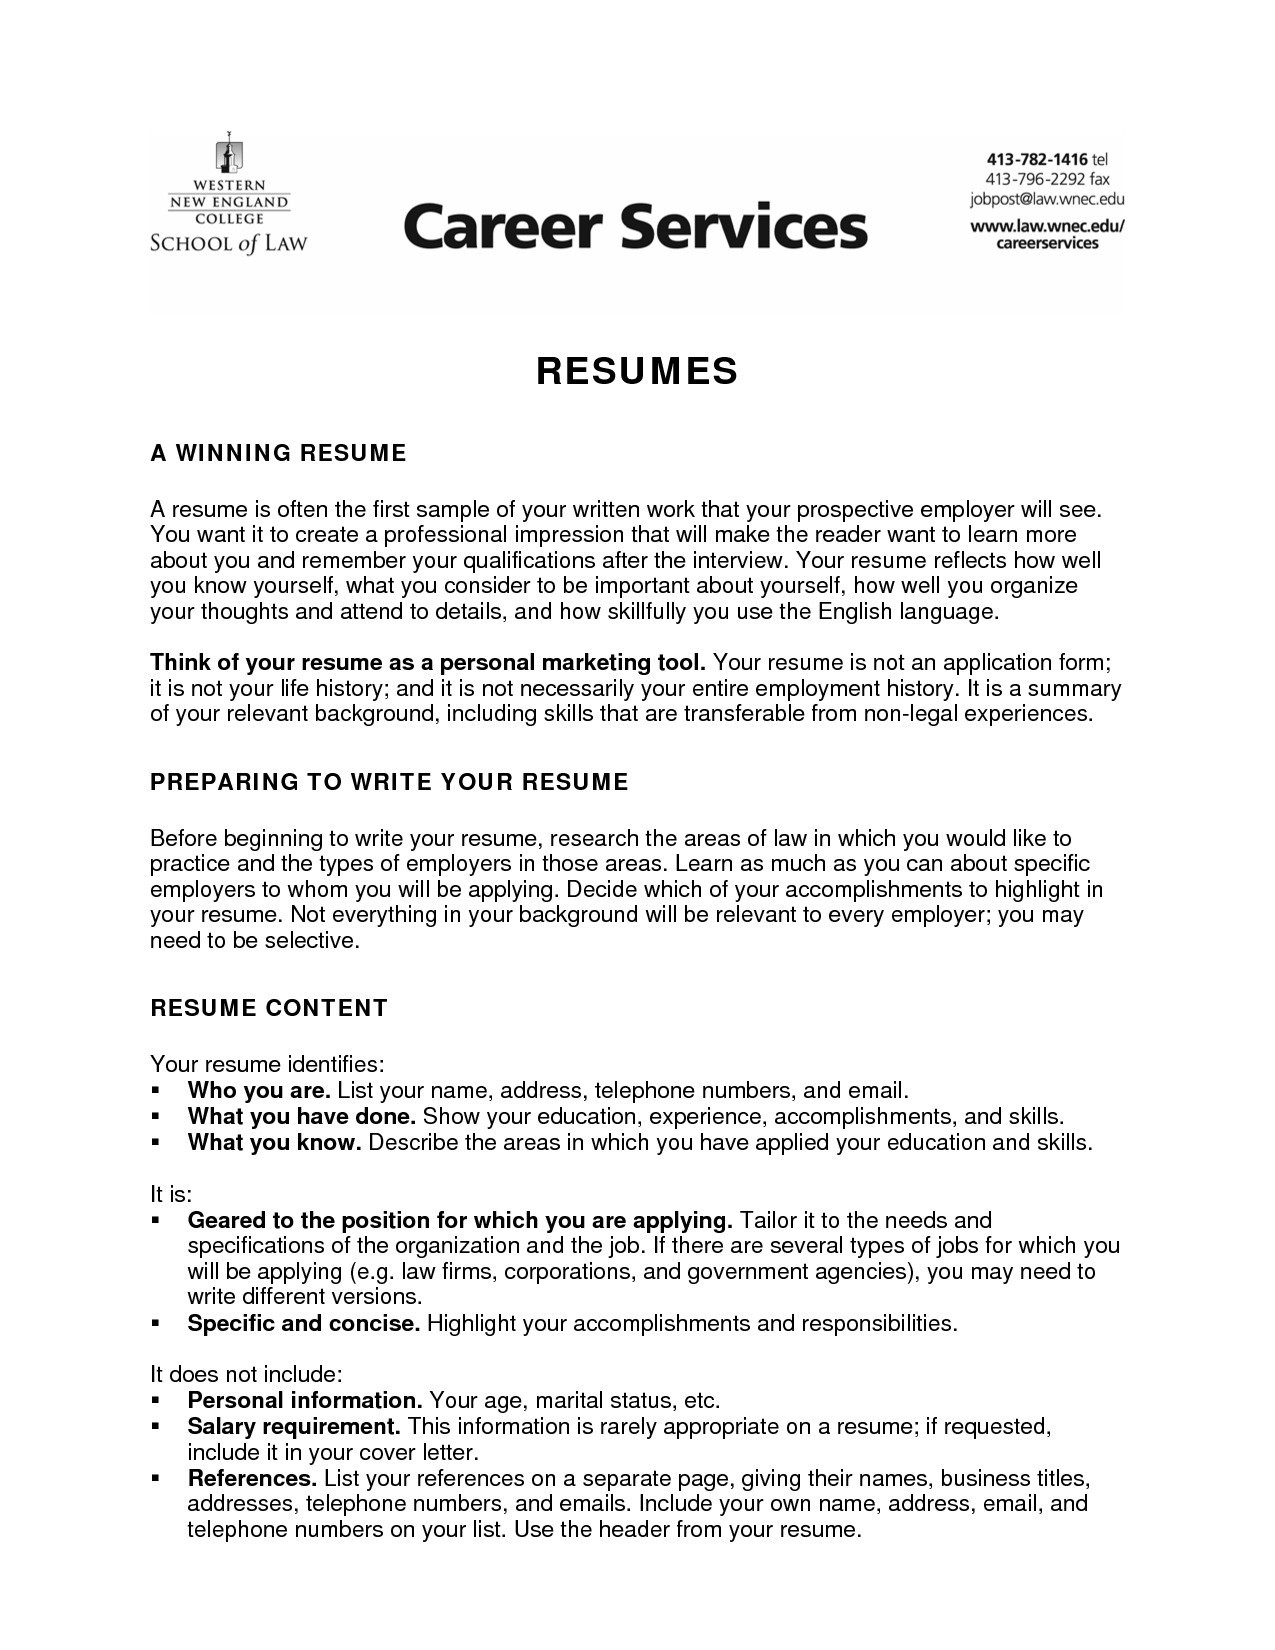 Resume Objective Examples  General Resume Objective Samples Free Free Download Warehouse Resume